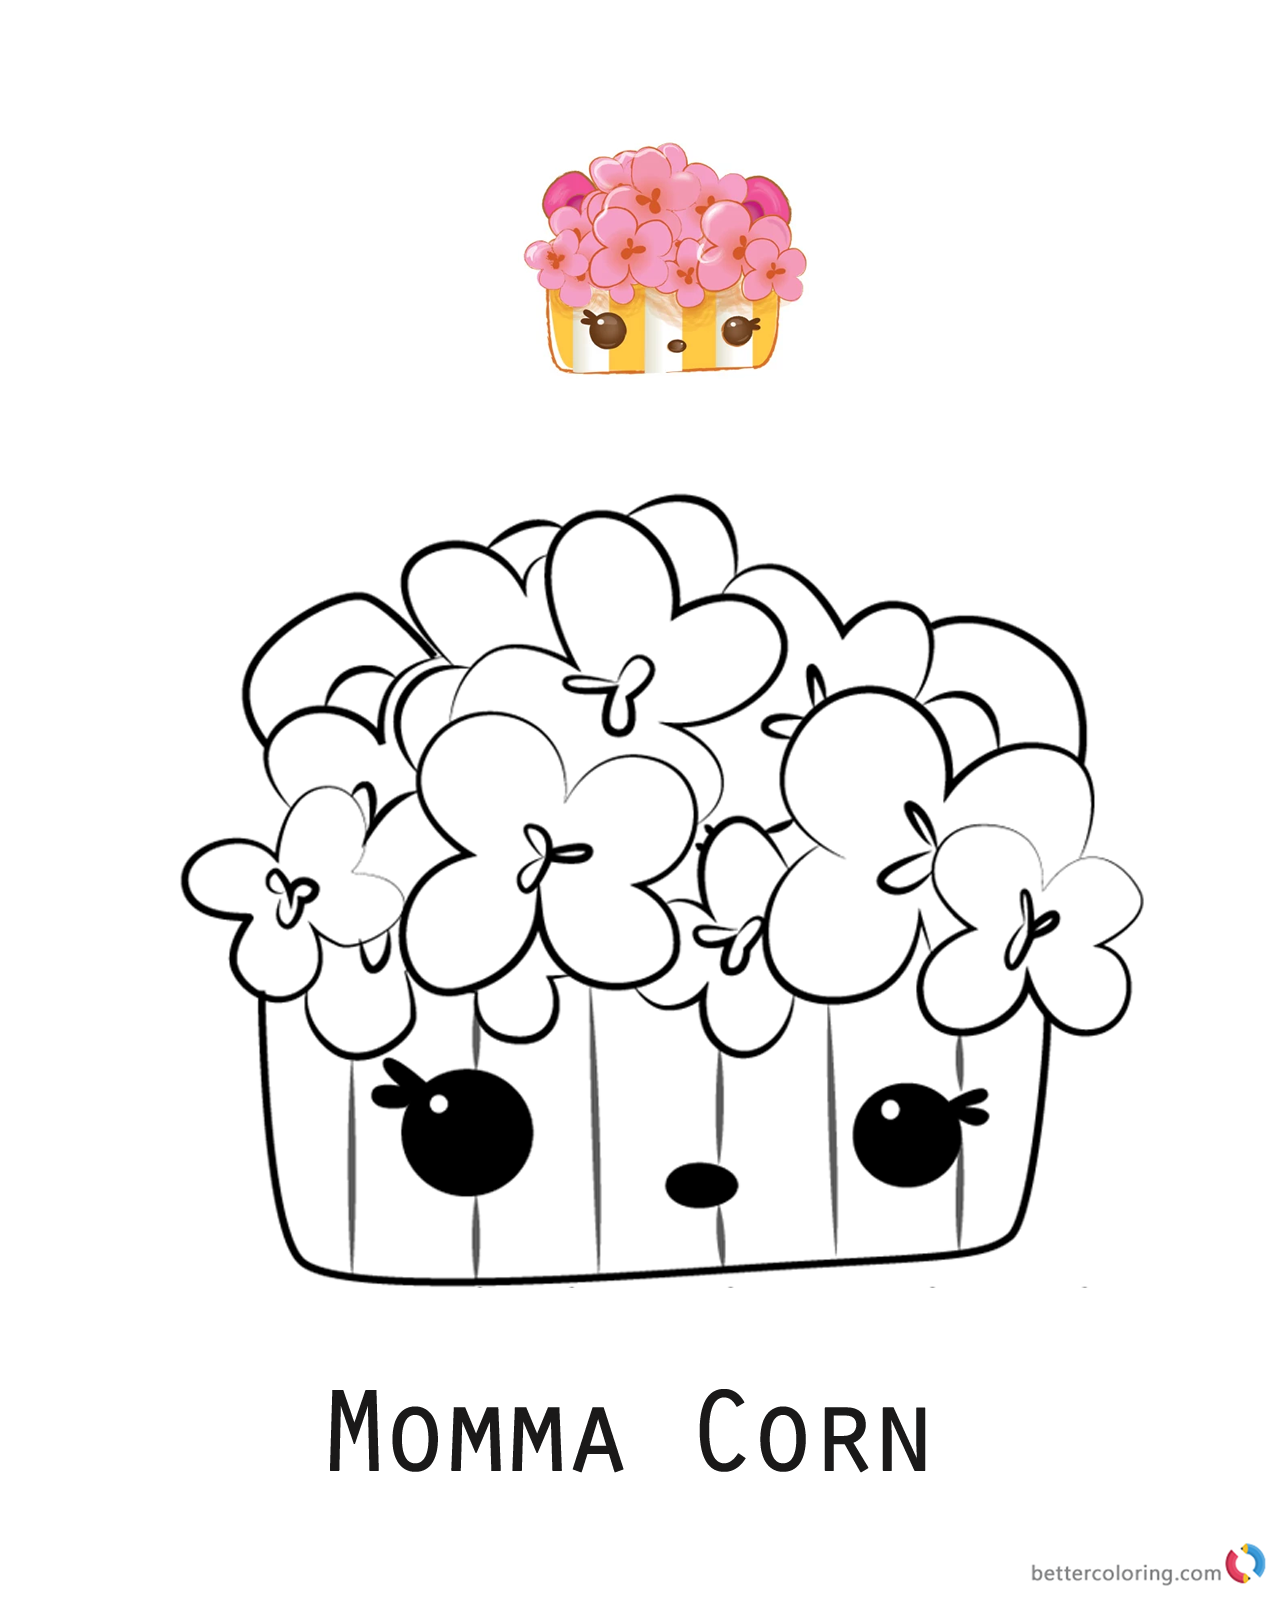 Momma Corn from Num Noms coloring pages printable